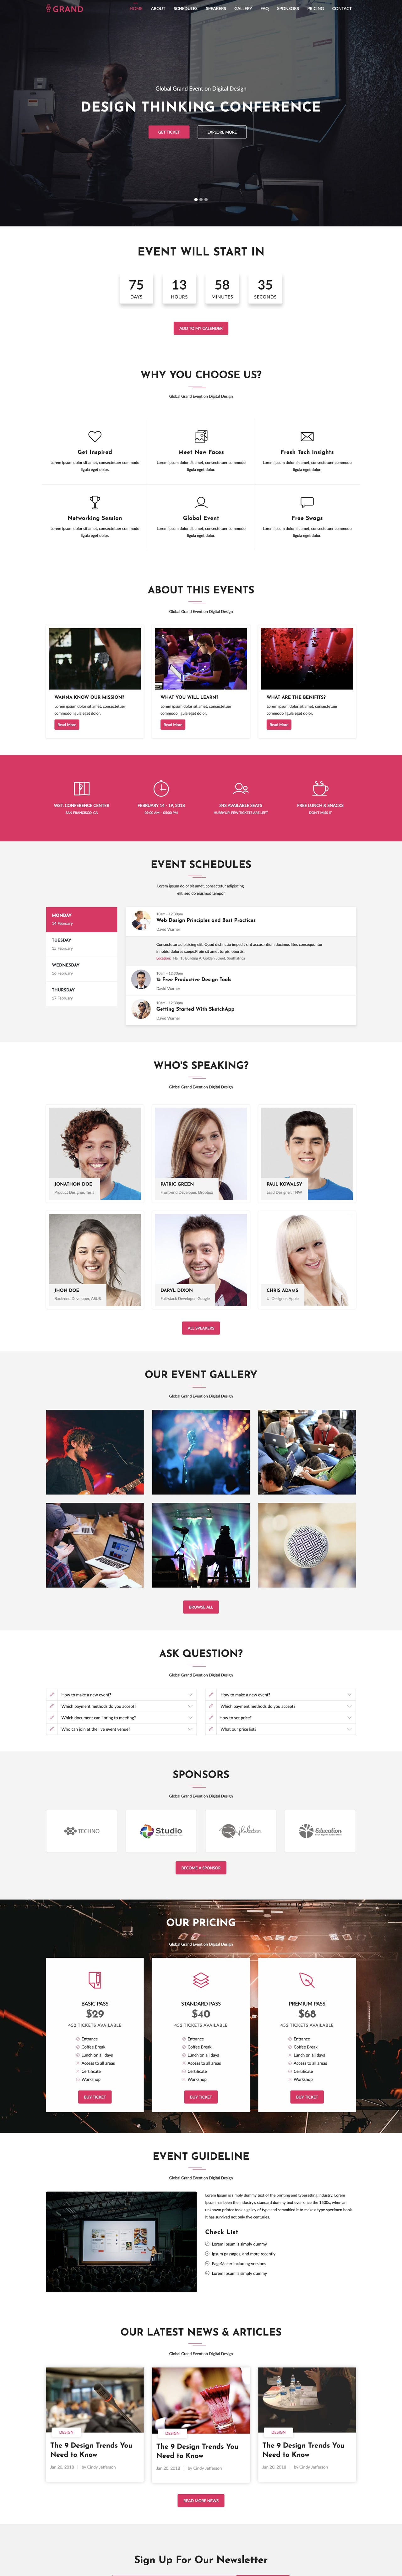 Grand - event/conference landing page HTML template